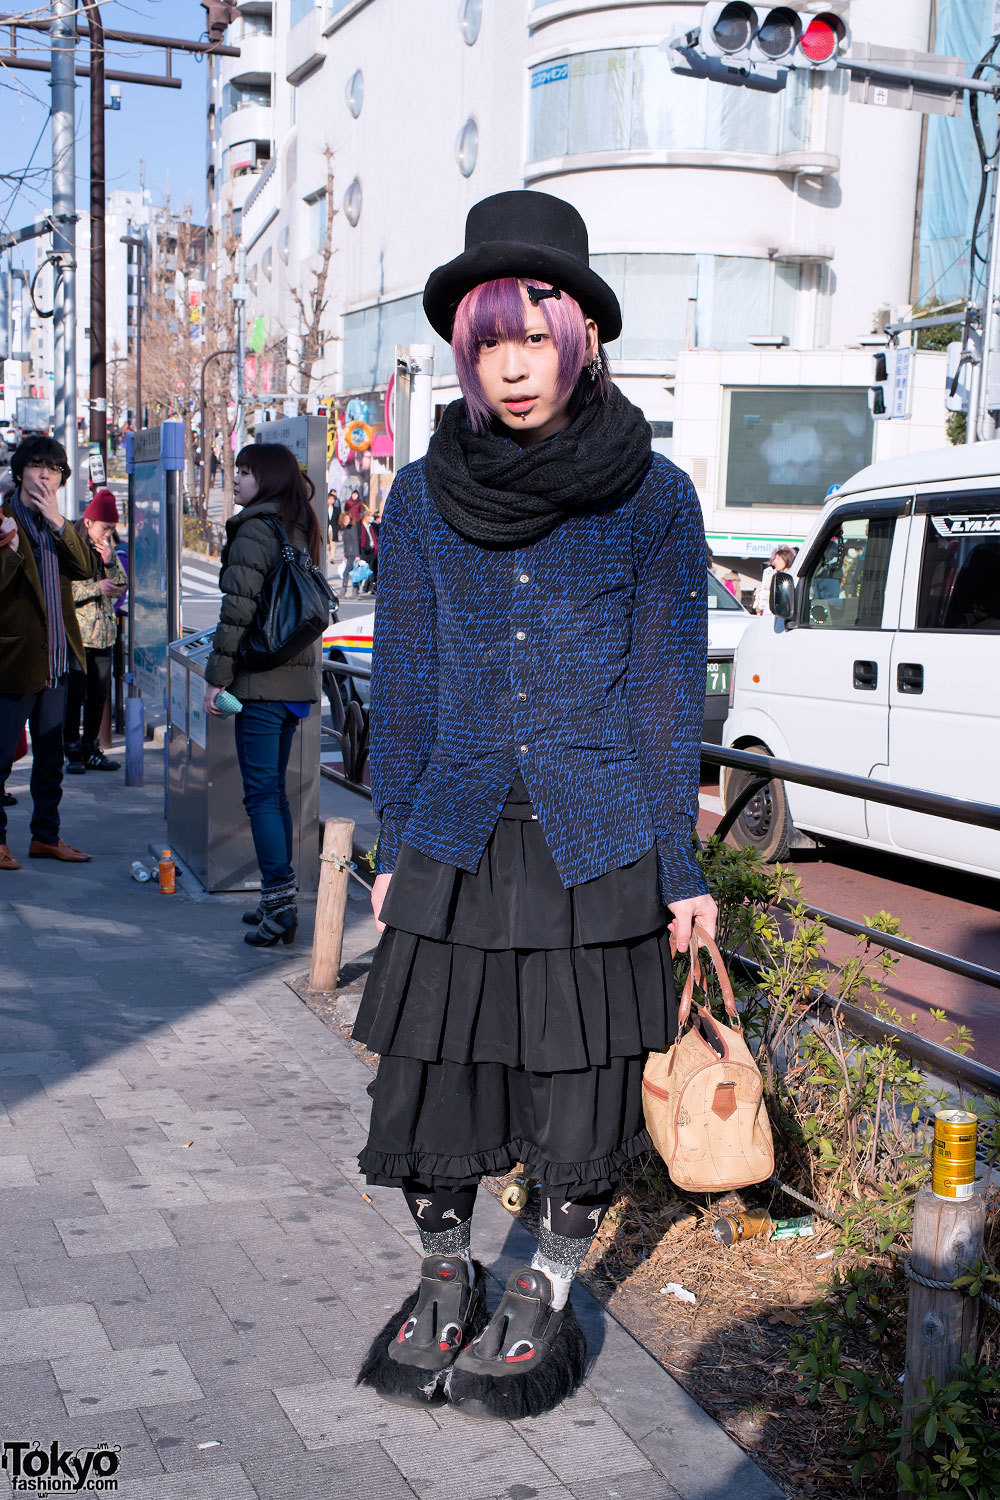 Harajuku guy w/ purple hair, labret piercing & Swear Alternative shoes that have fur, eyeballs, and horns.